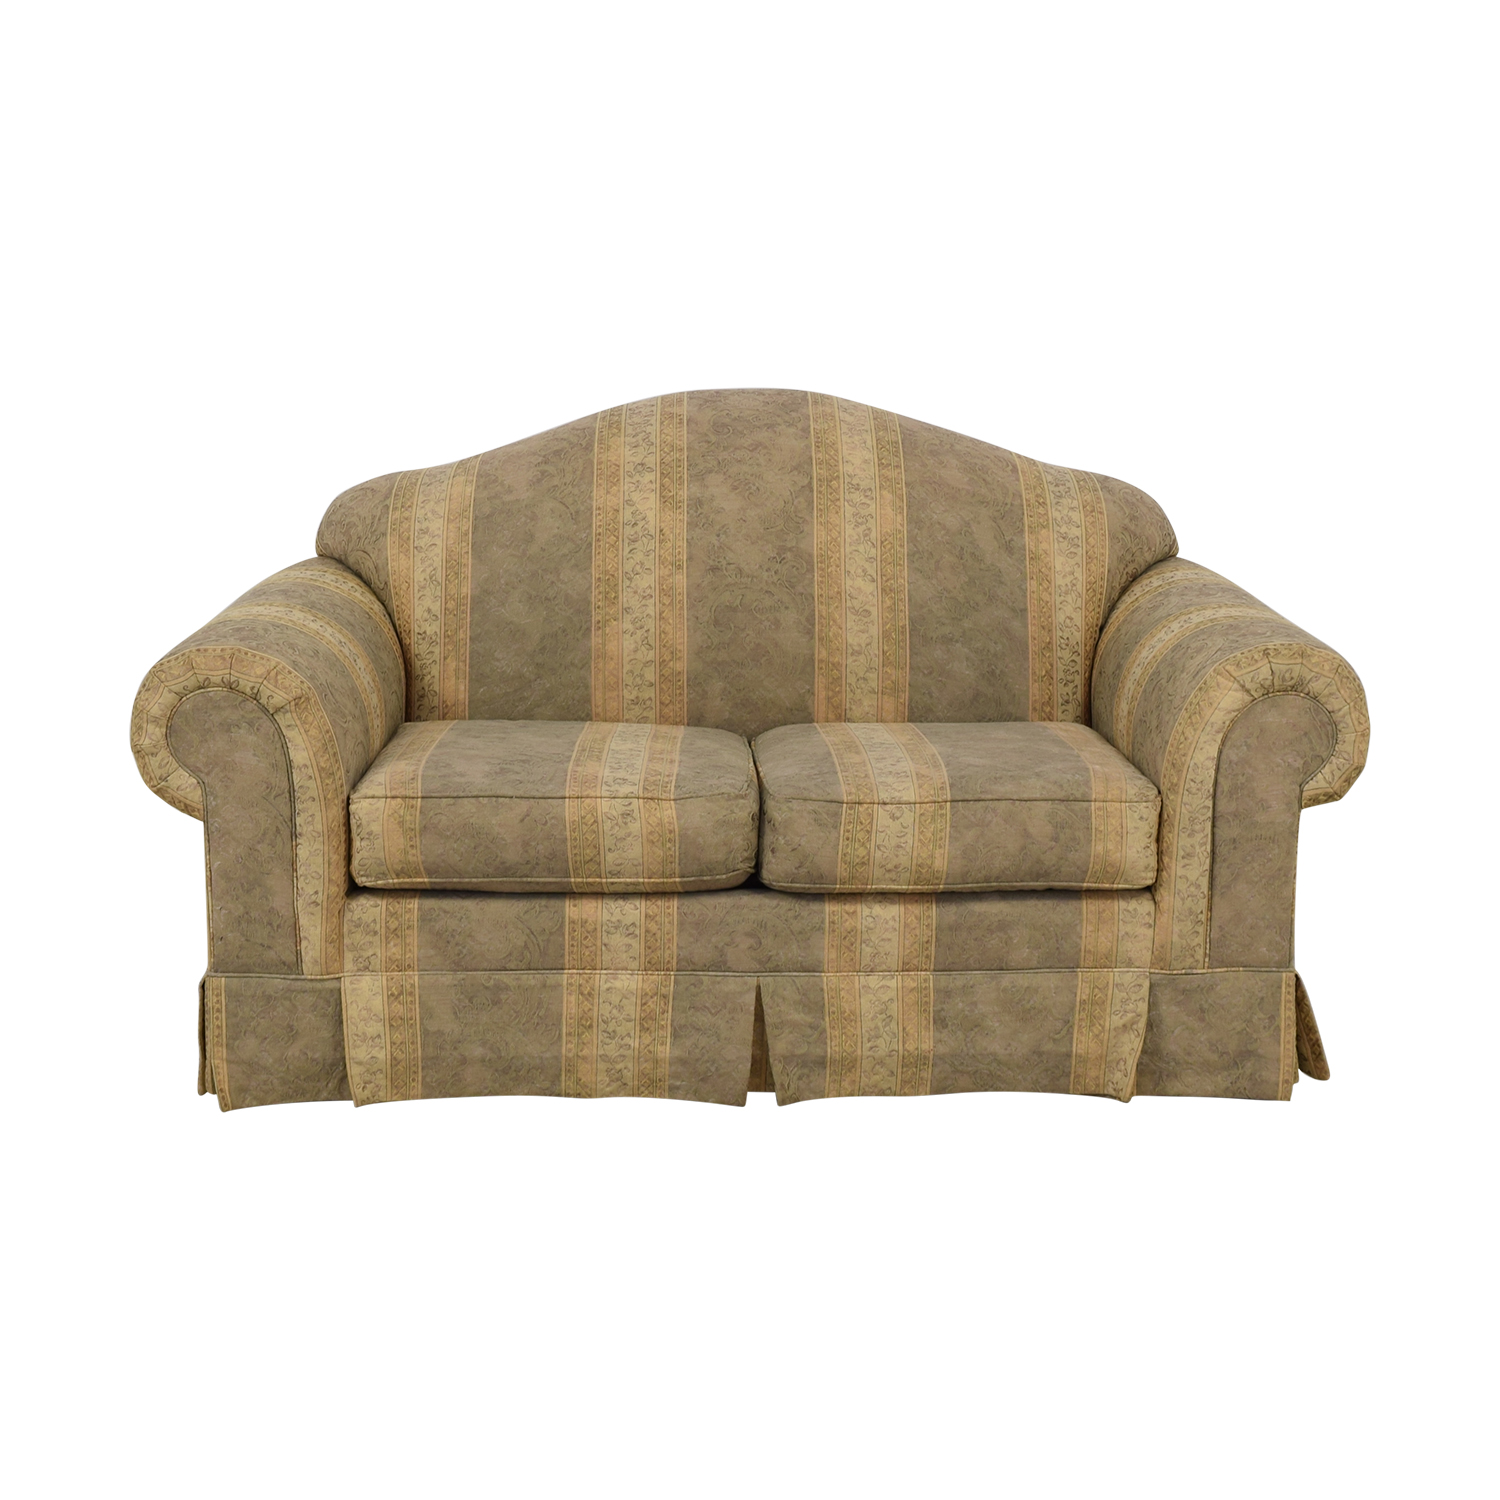 Thomasville Thomasville Impressions Regency Style Loveseat discount